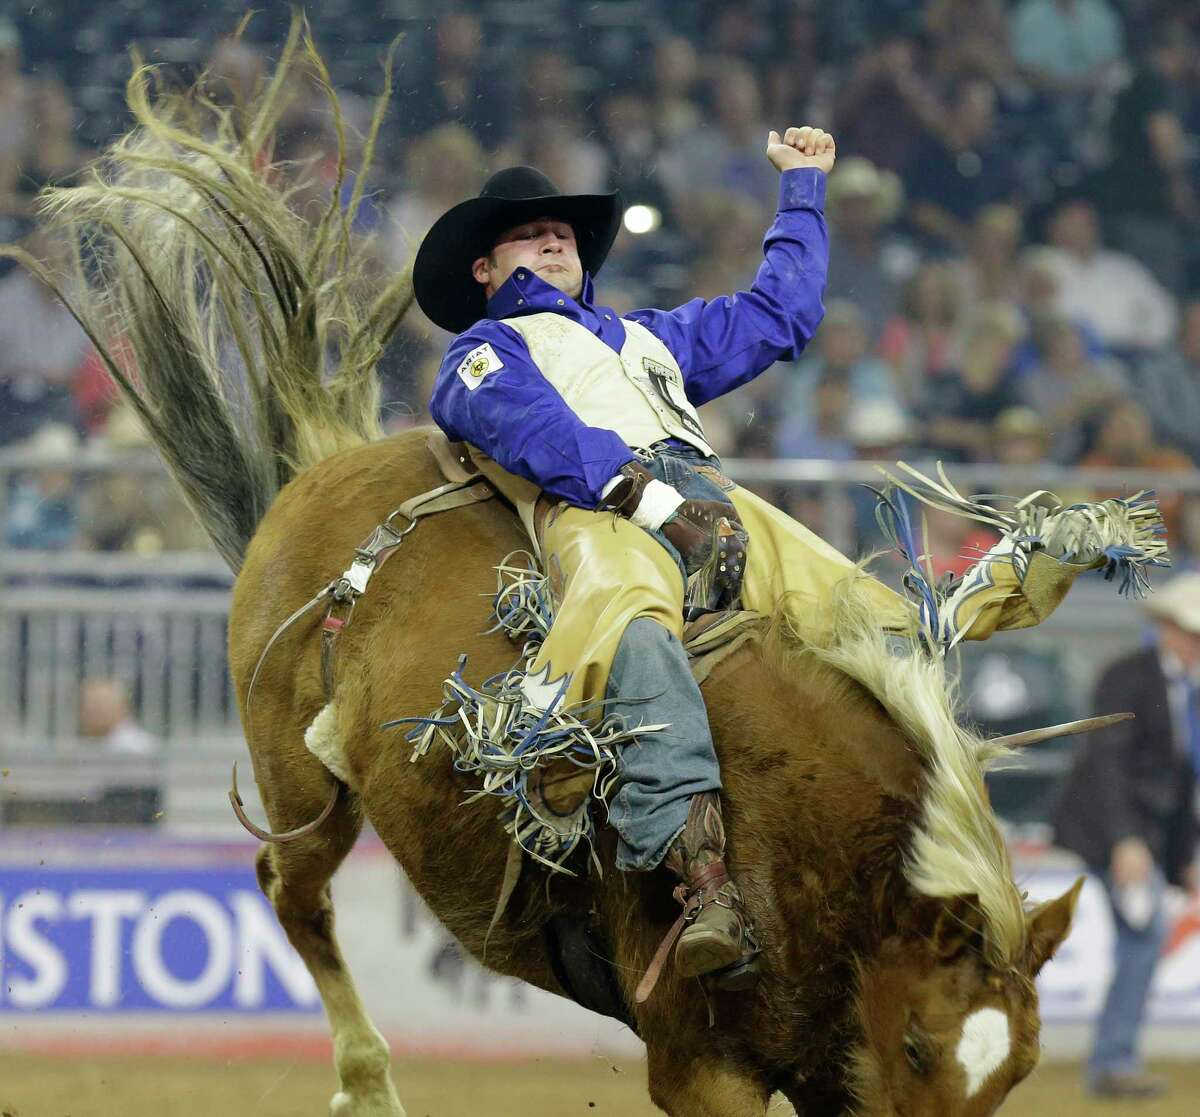 Kaycee Feild of Spanish Fork, UT competes in bareback riding at RodeoHouston during the Houston Livestock Show and Rodeo in NRG Stadium Tuesday, March 15, 2016, in Houston. ( Melissa Phillip / Houston Chronicle )